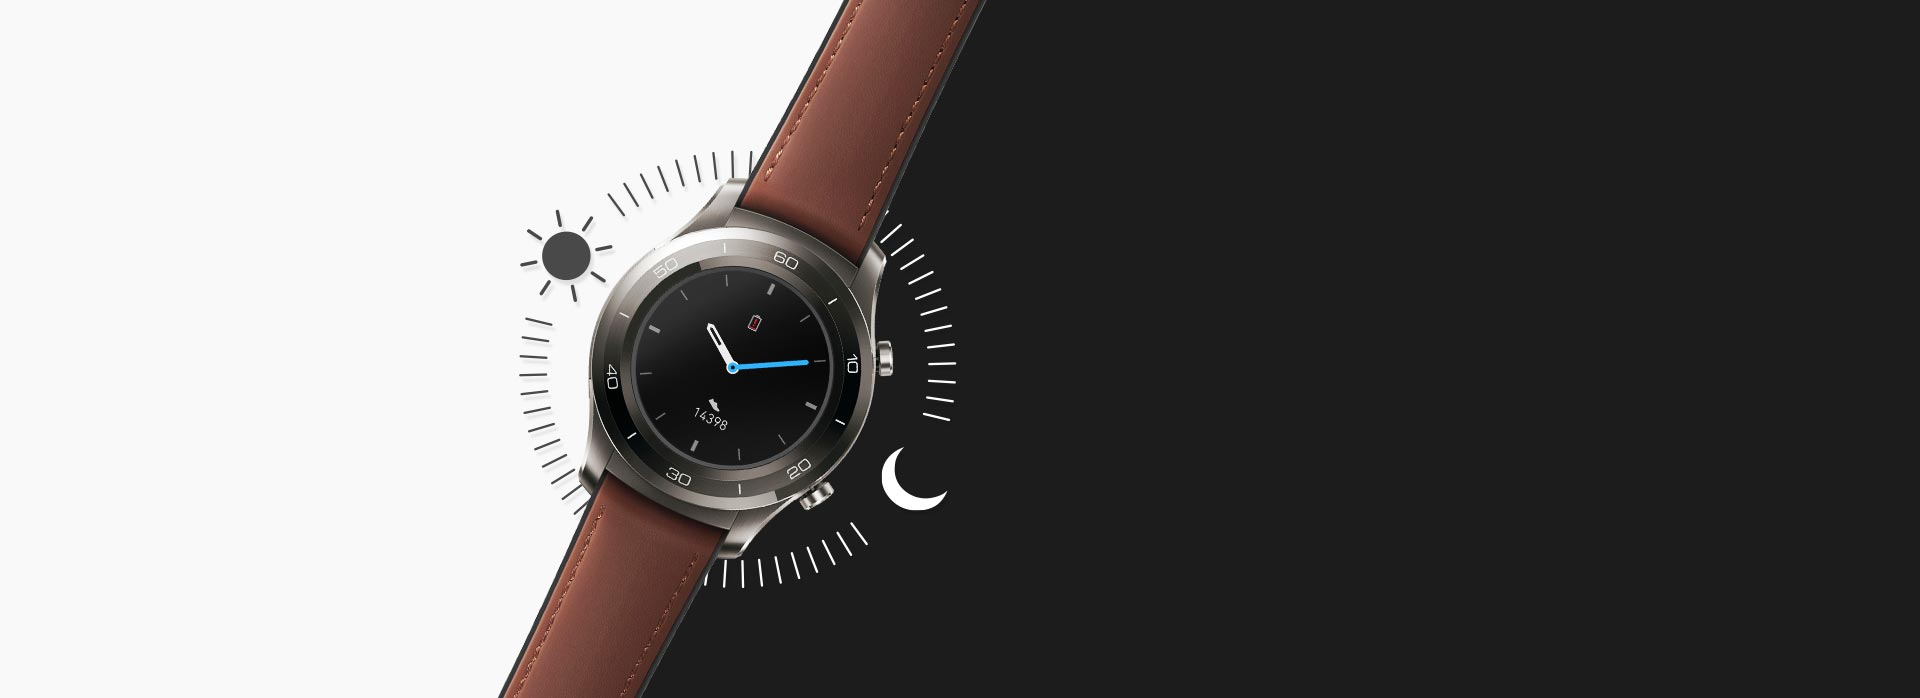 Huawei_watch_overview_19